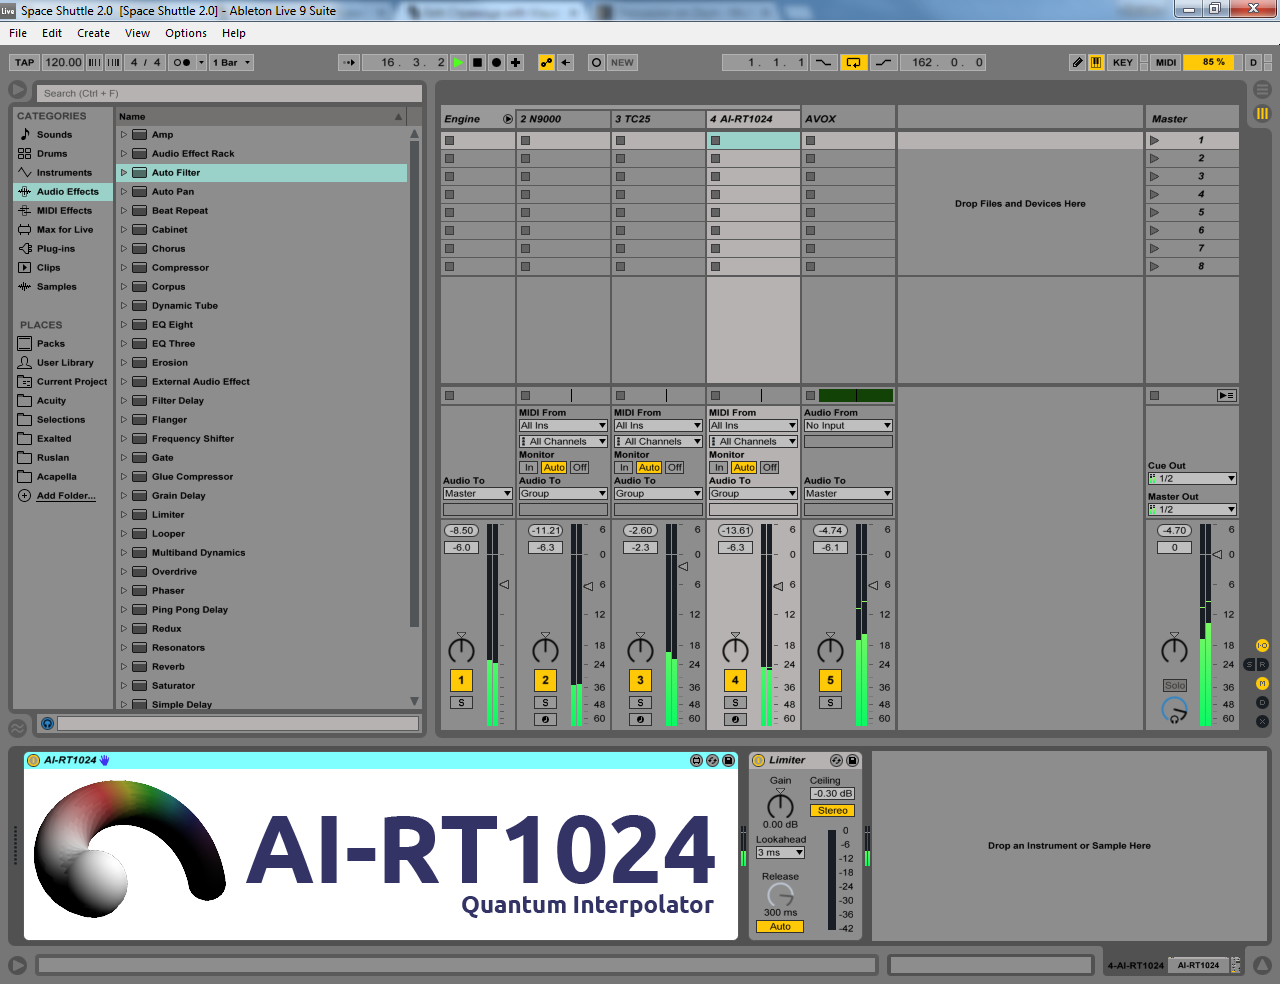 AI-RT1024 in Ableton